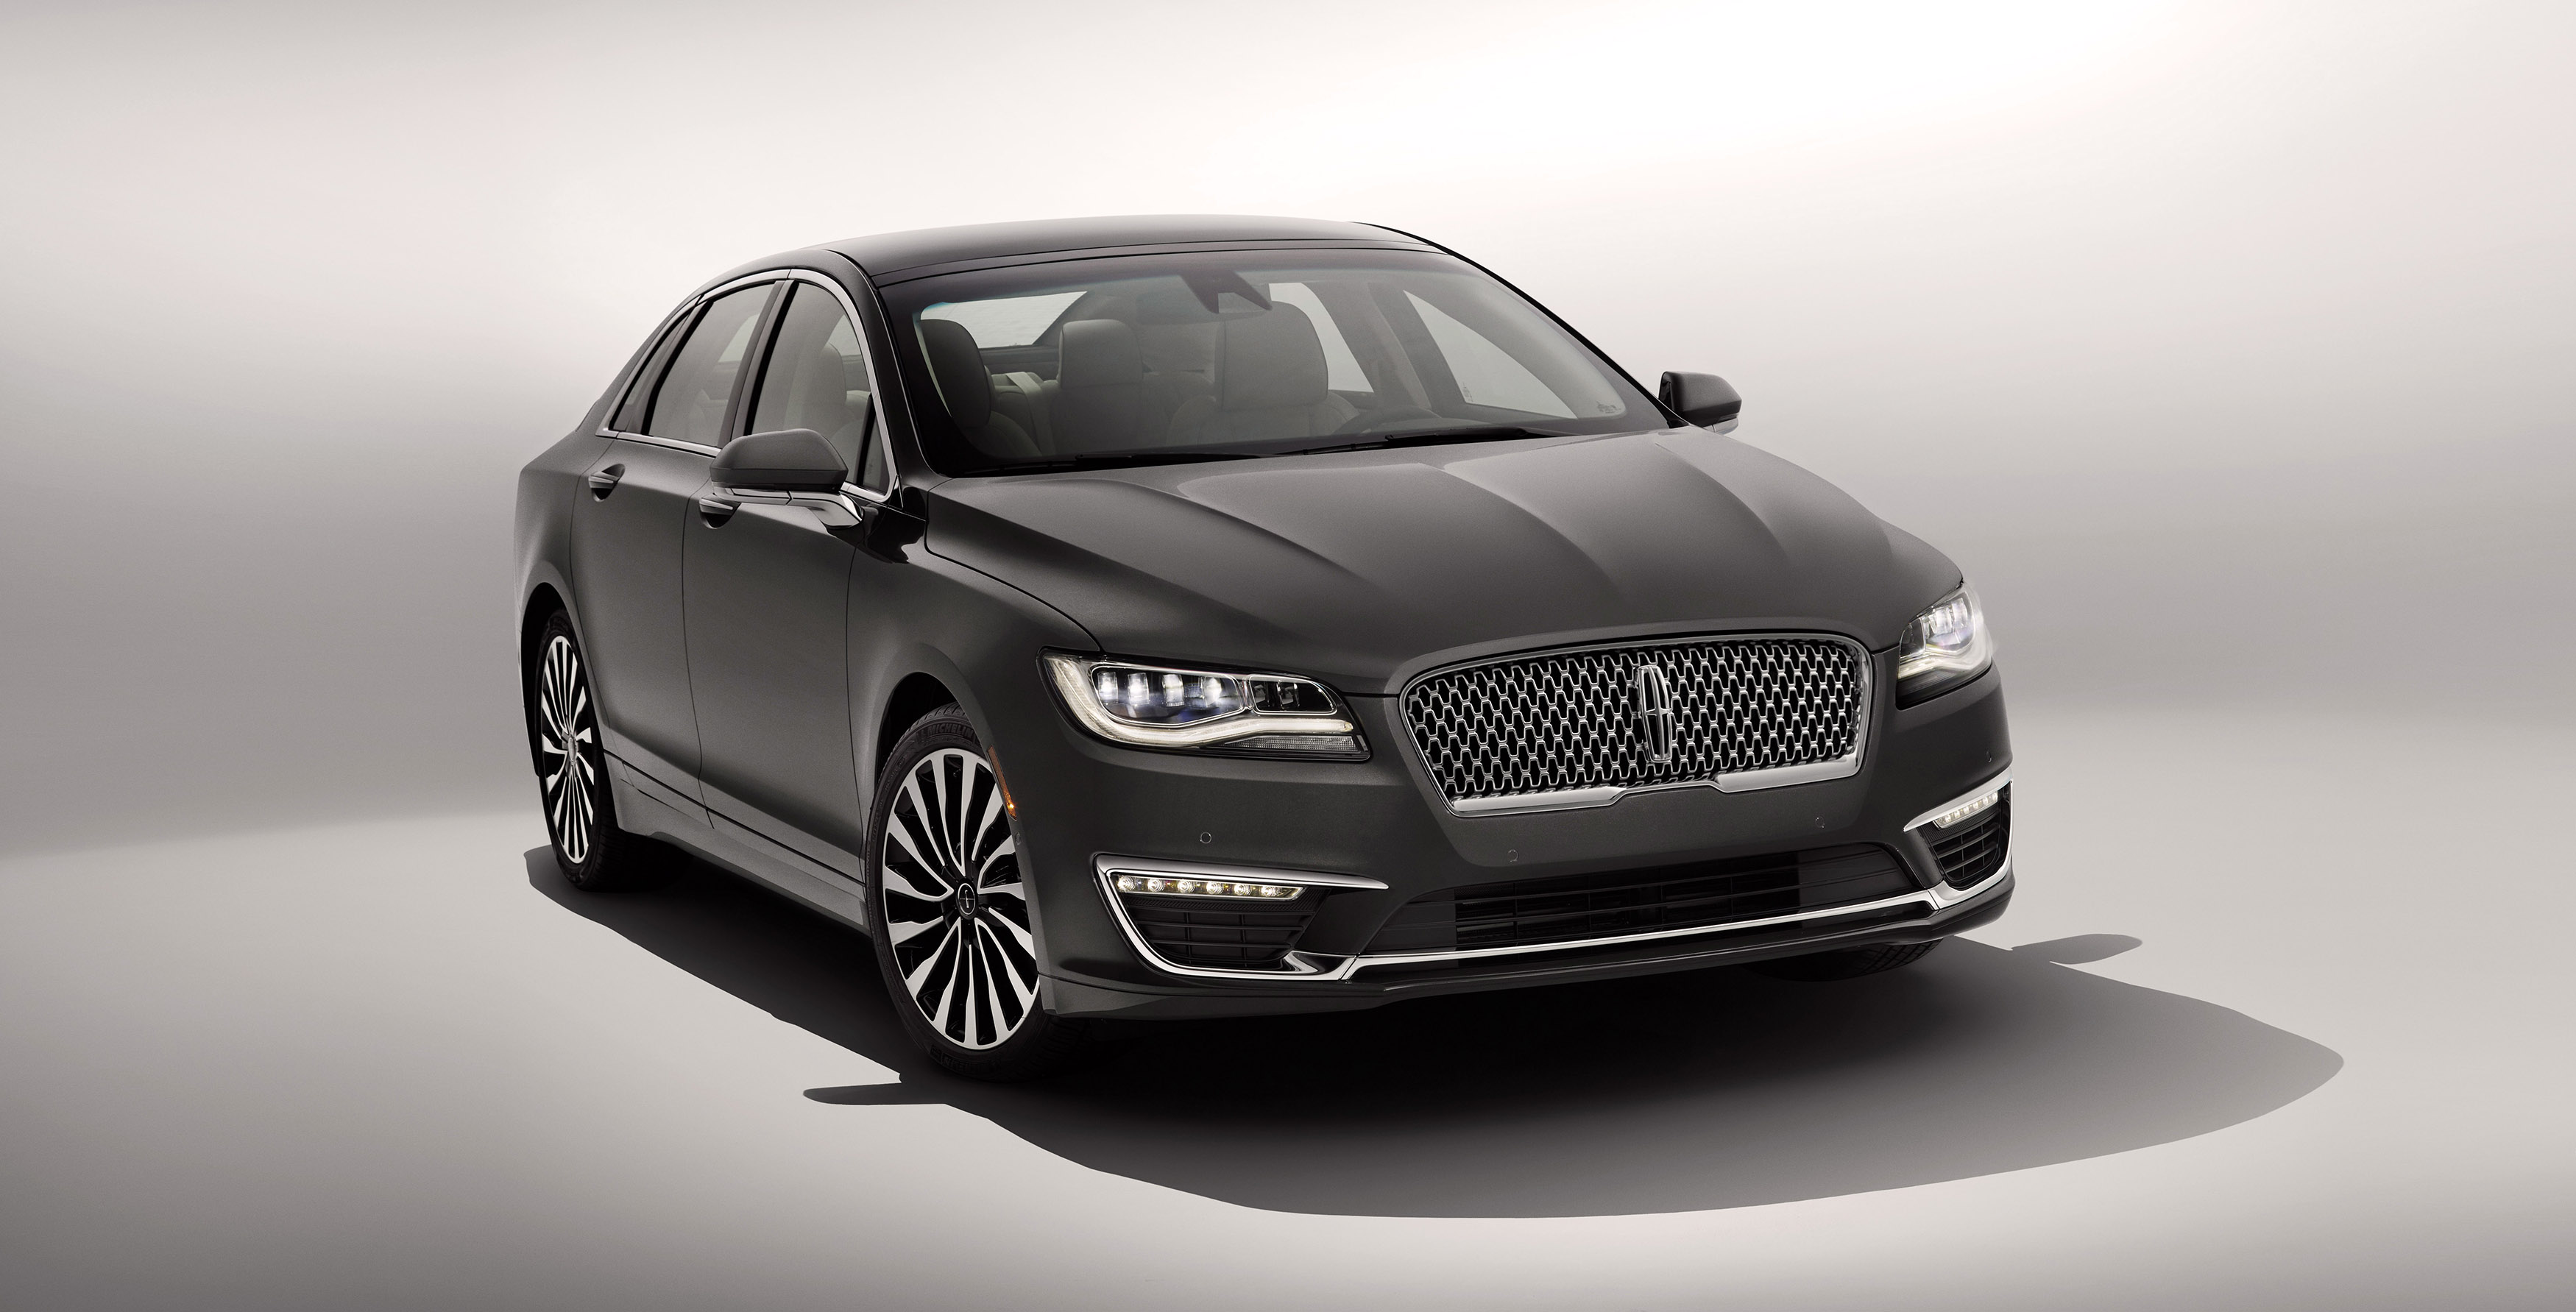 73 The Best Spy Shots Lincoln Mkz Sedan Configurations